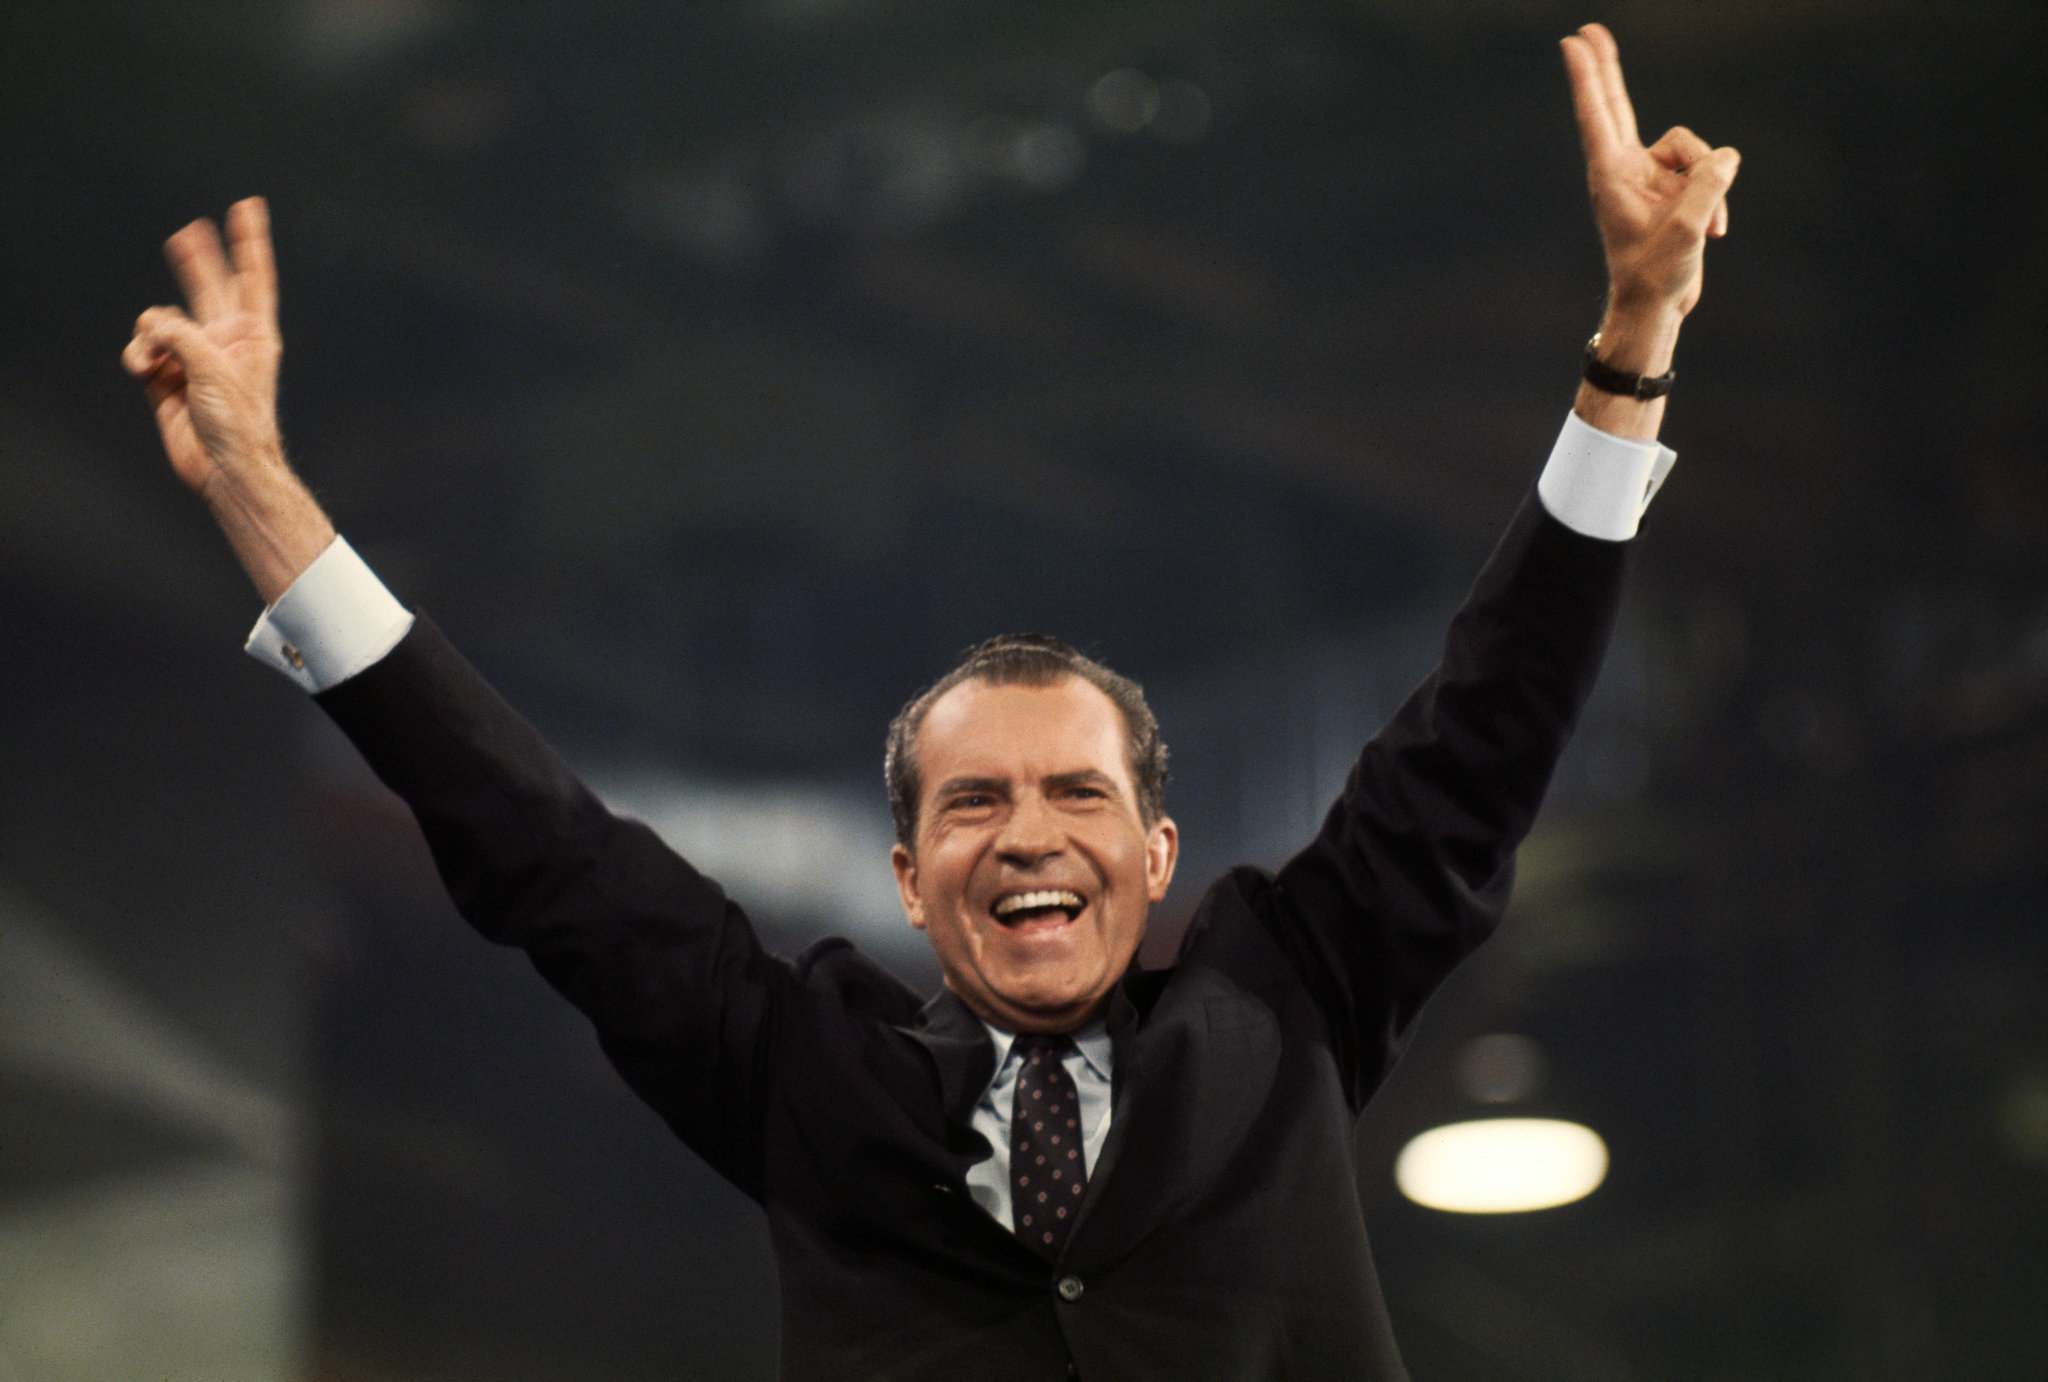 President Nixon raises both hands triumphantly overhead.